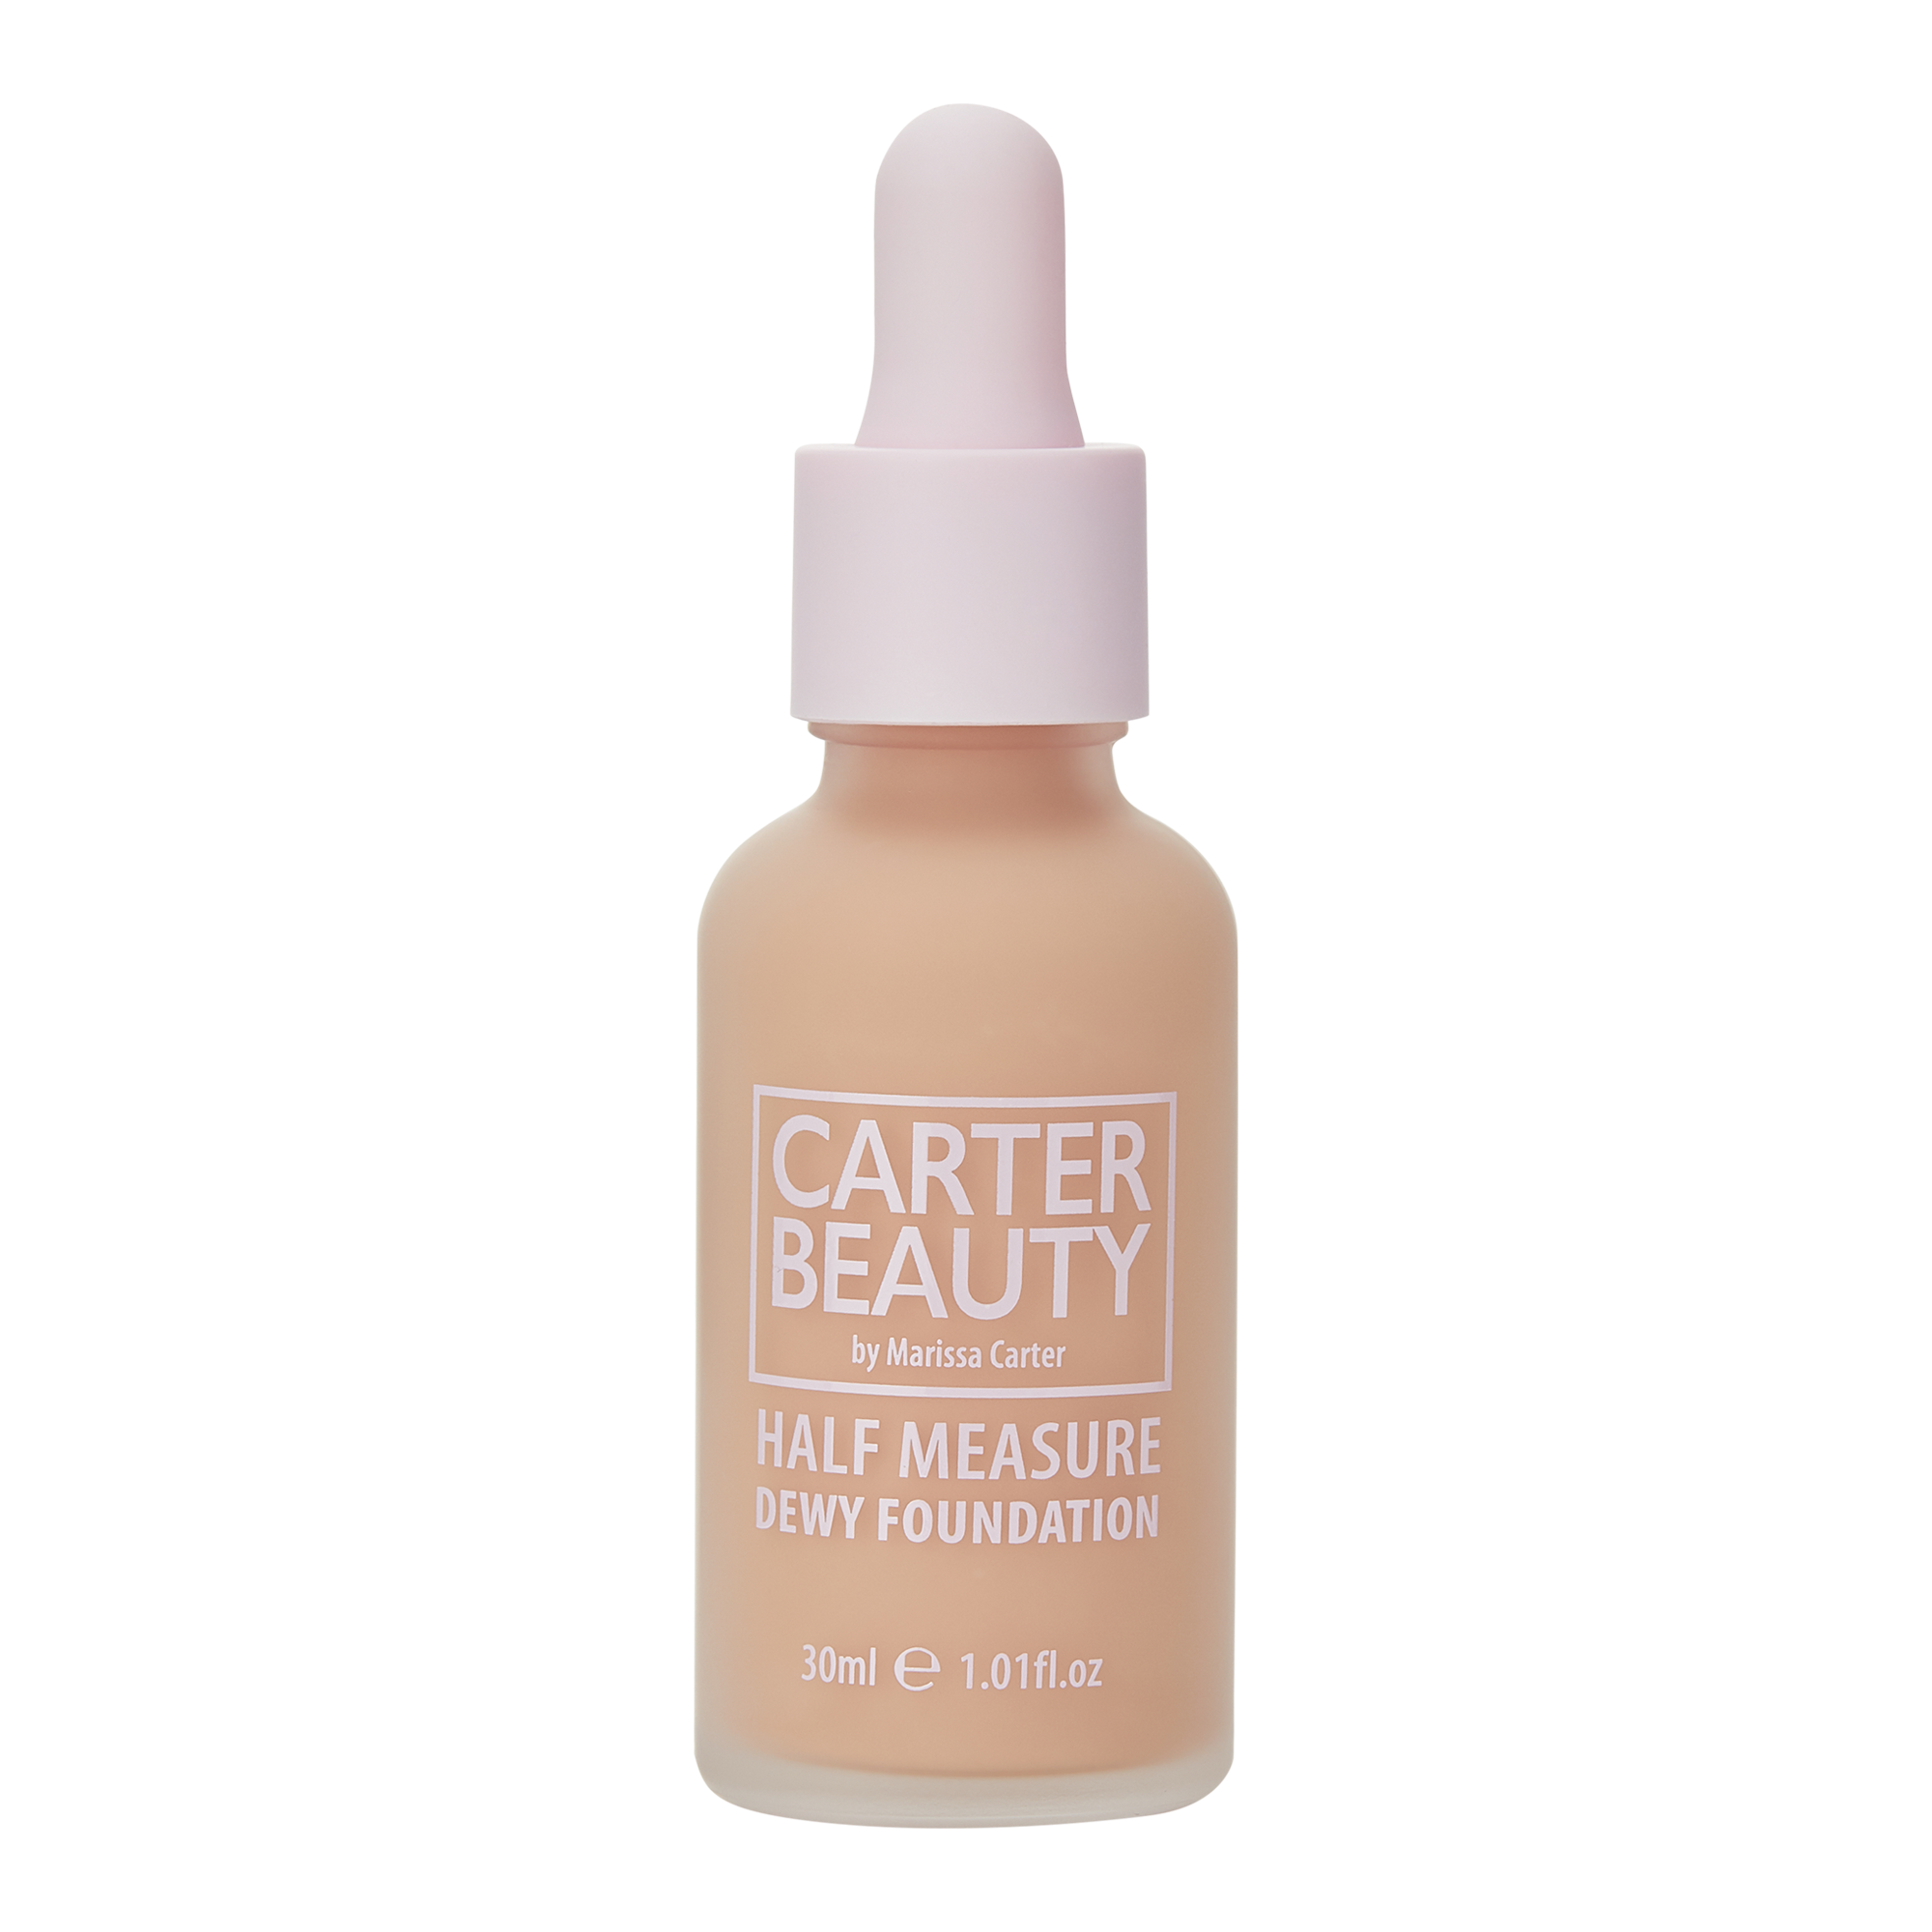 Half Measure Dewy Foundation